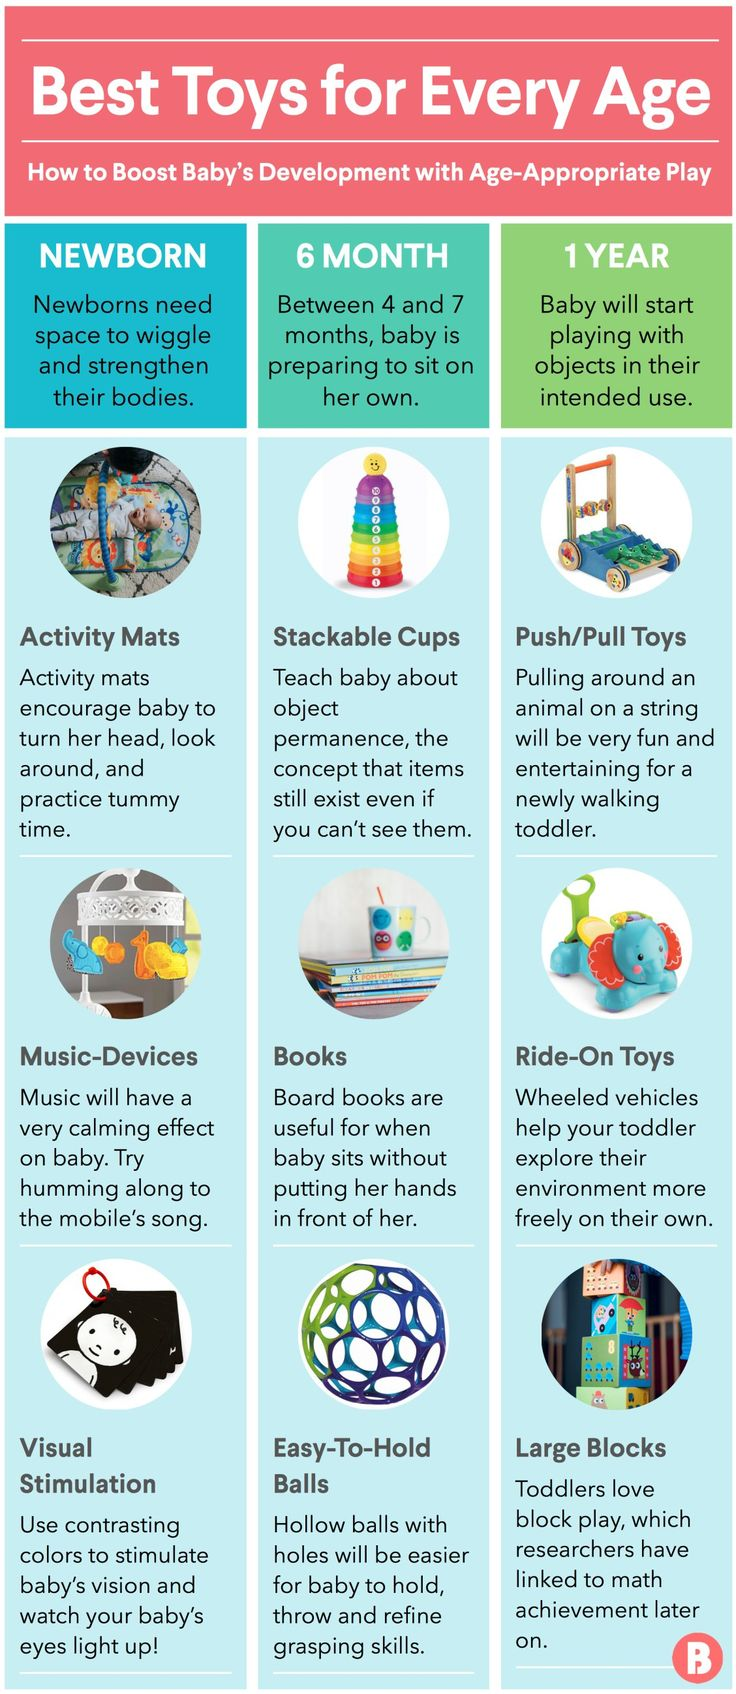 What Are the Best Toys for Infants? - Make Your Best Home